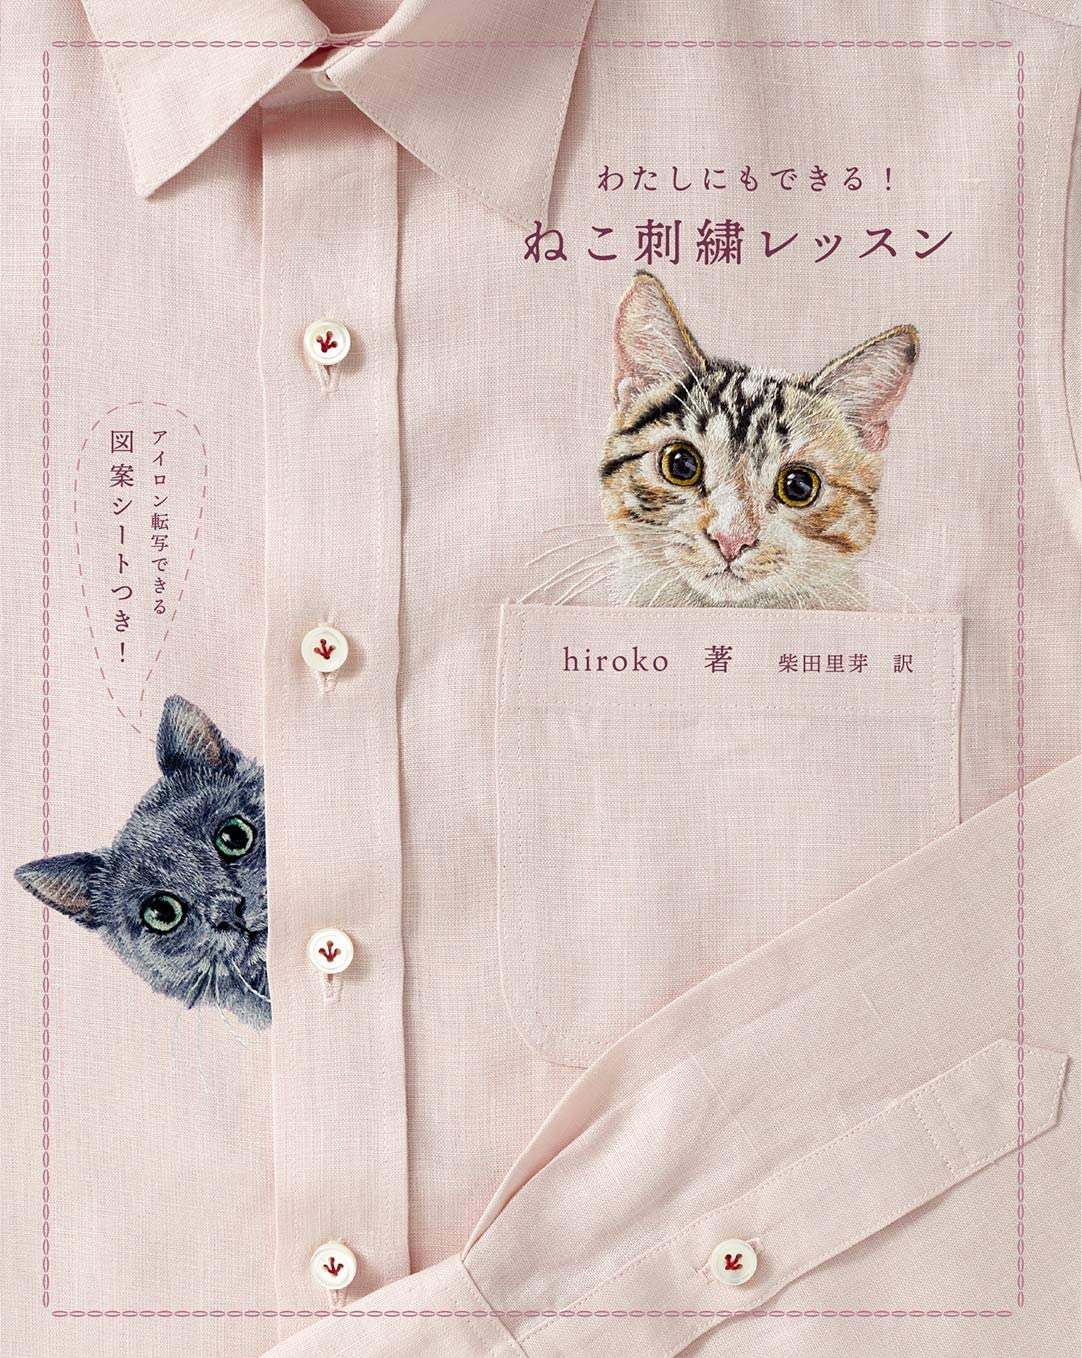 Cat embroidery lesson